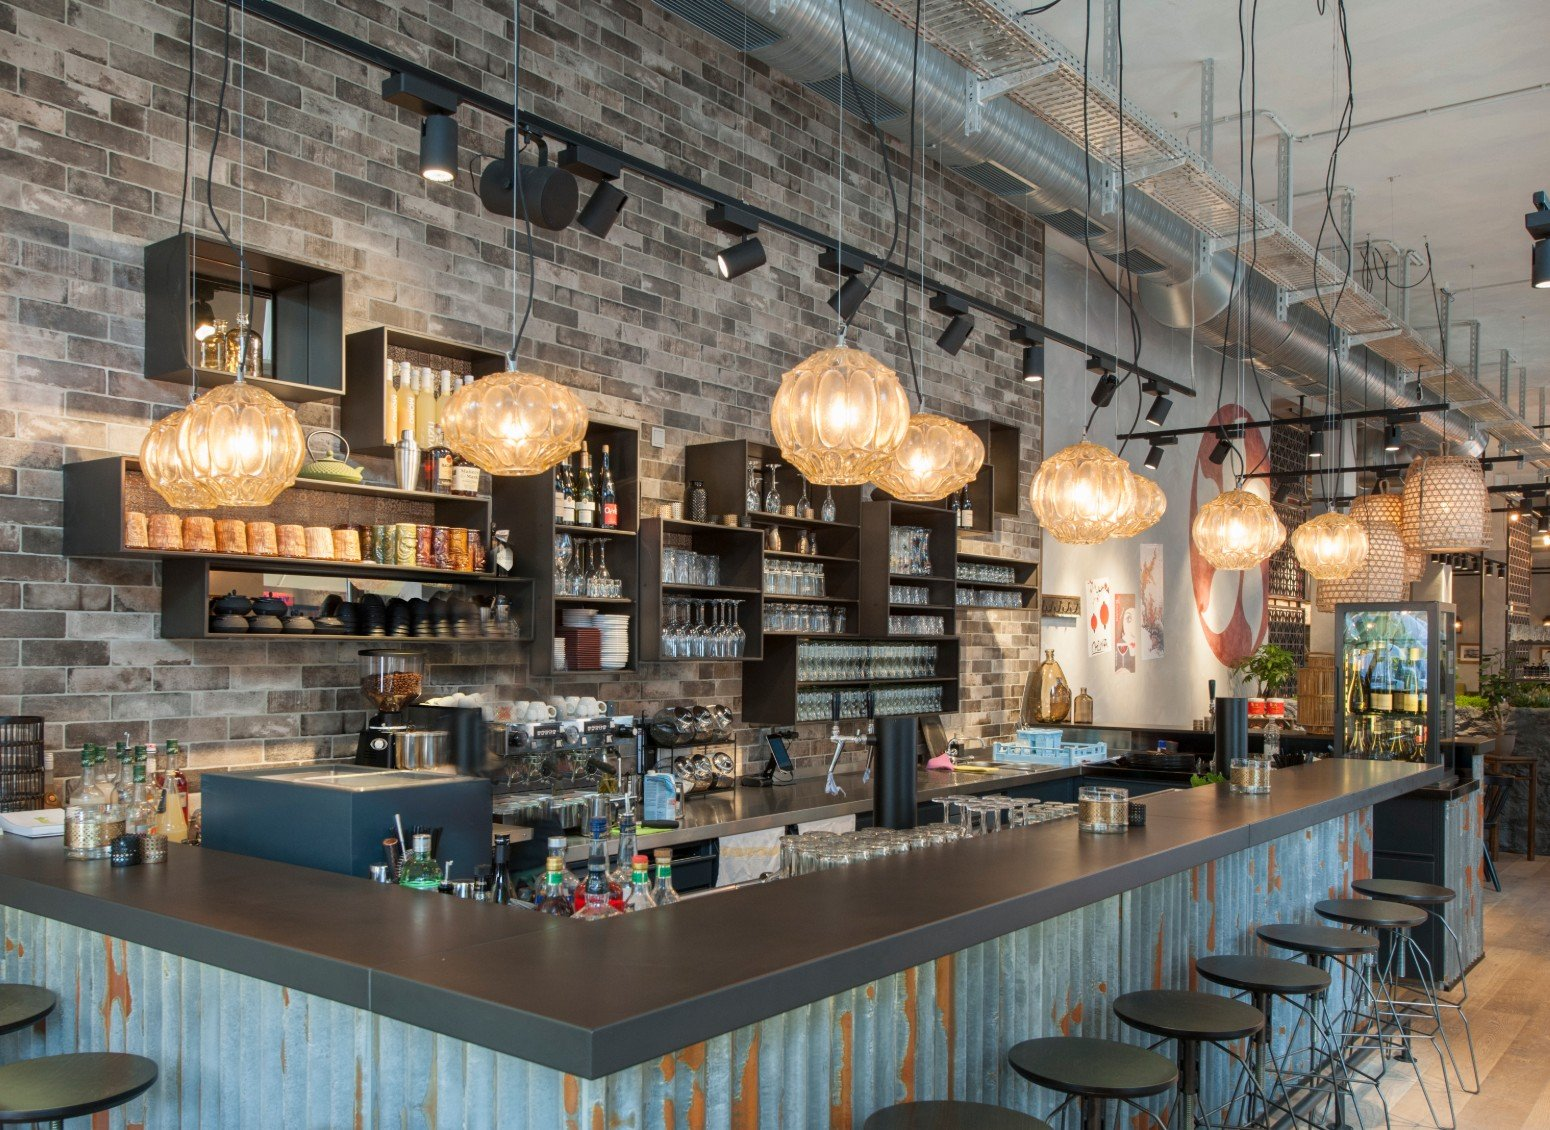 Illuminating the countertop of a bar or restaurant: a guide for choosing lamps